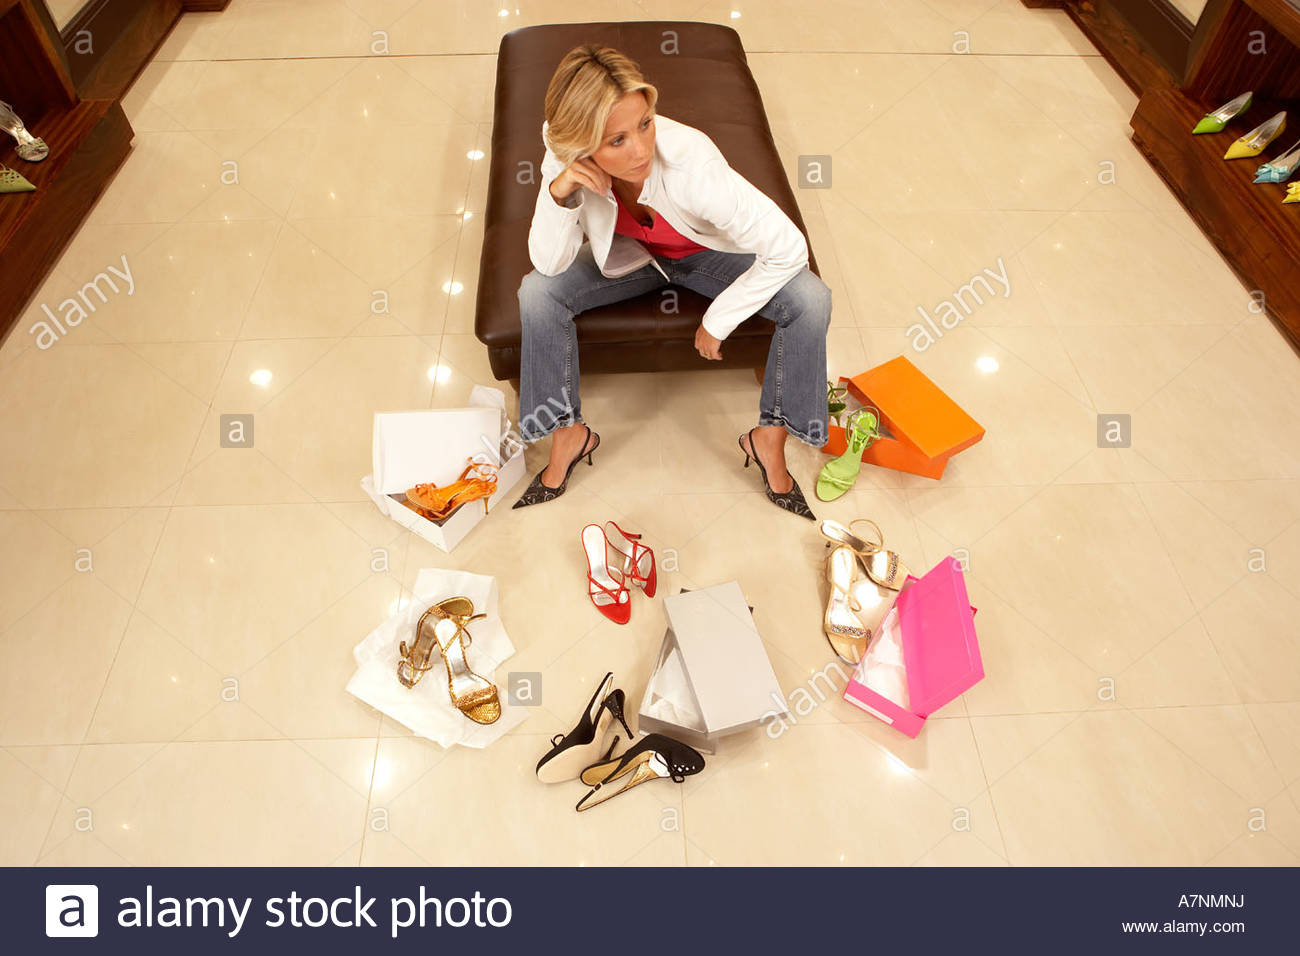 Mature blonde woman trying on different pairs of high heels in shoe shop thinking elevated view - Stock Image